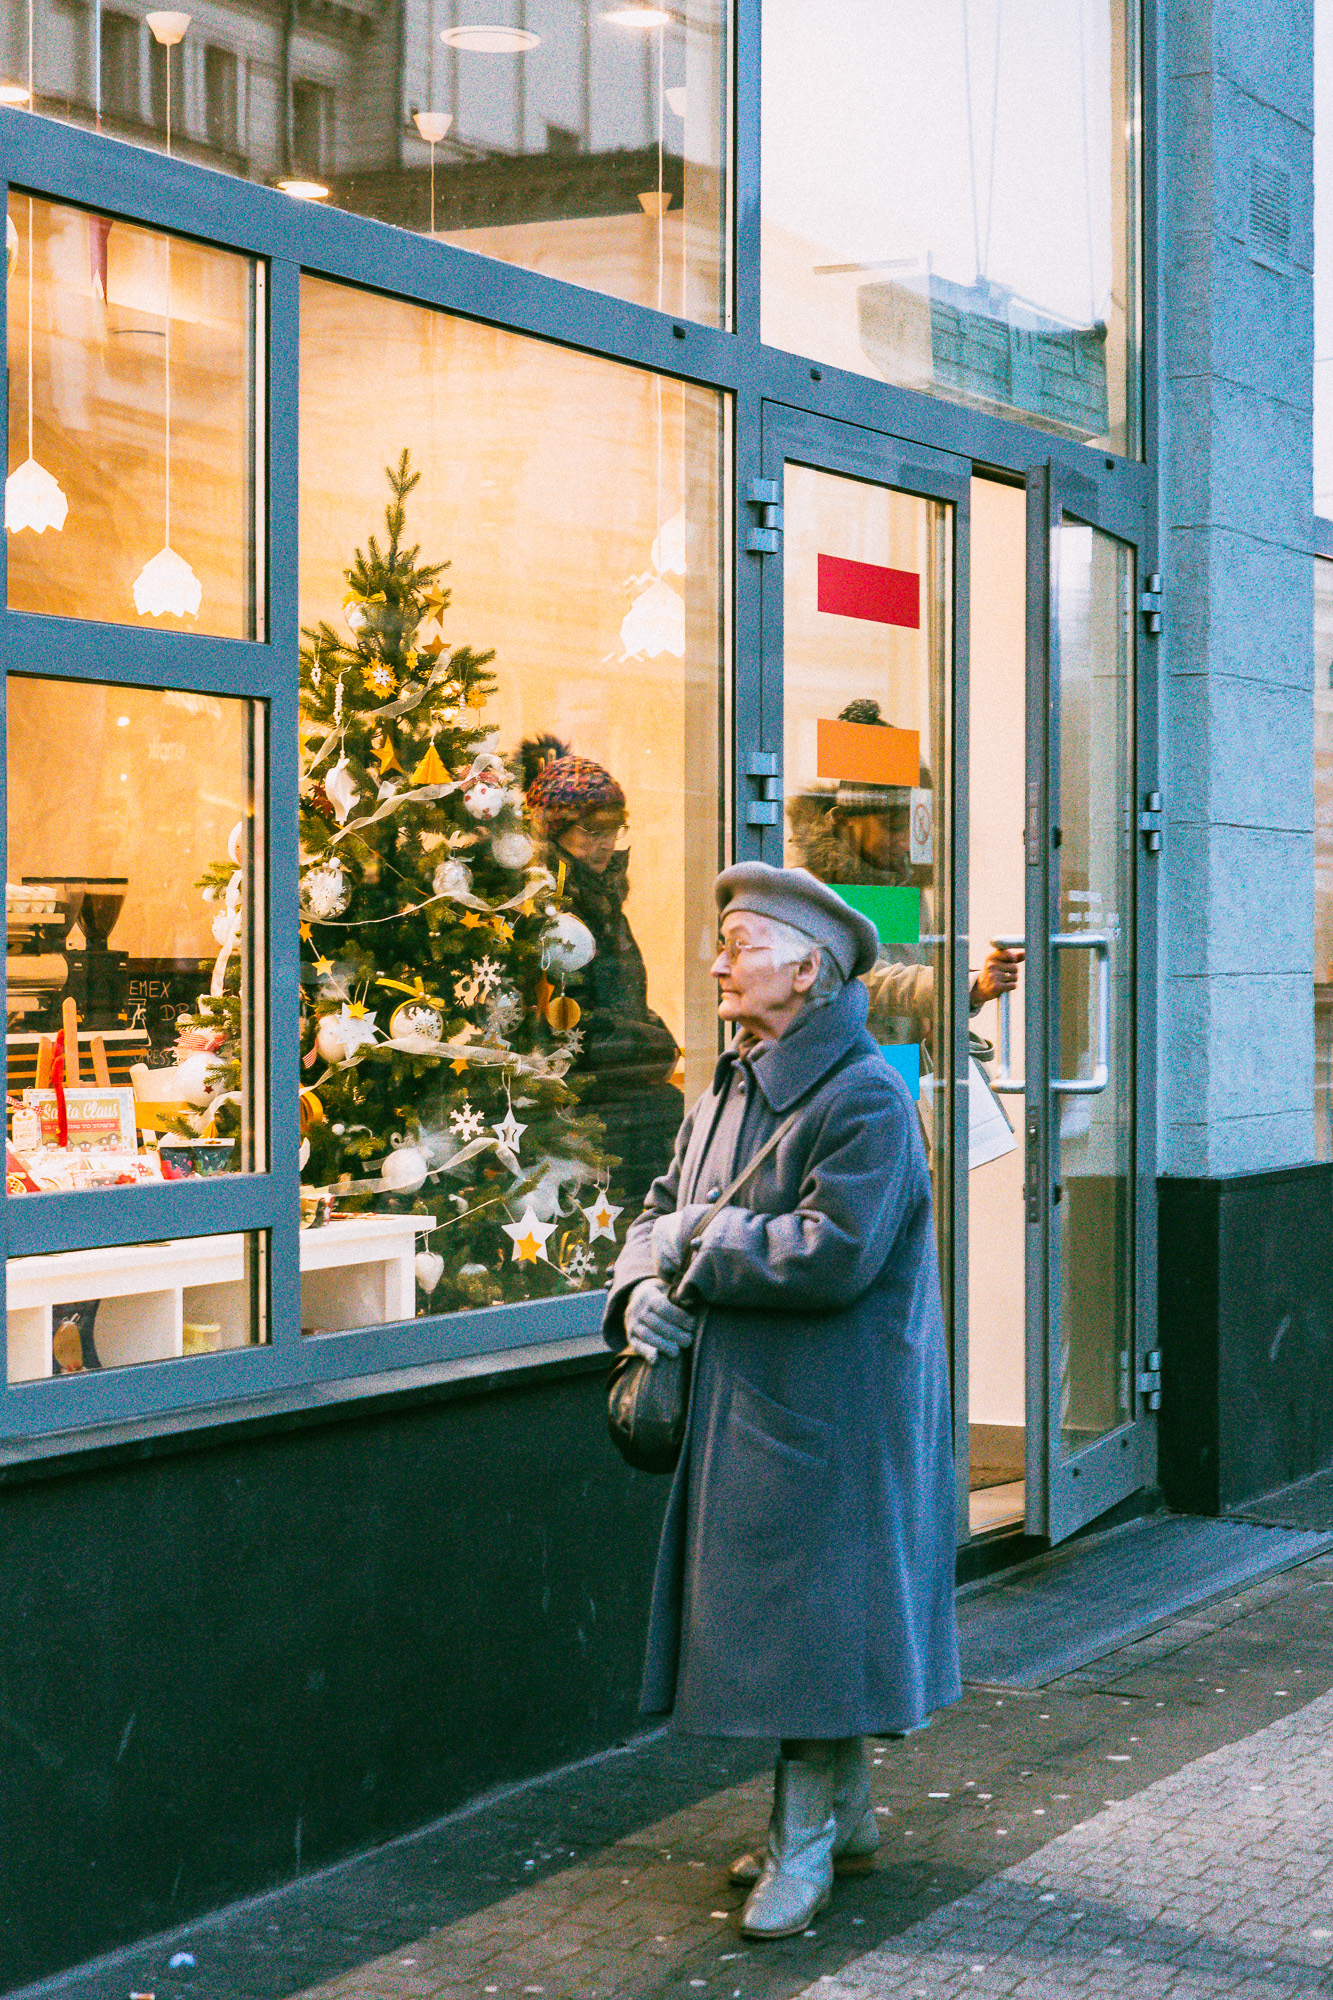 Old woman craving Christmas in Poznan